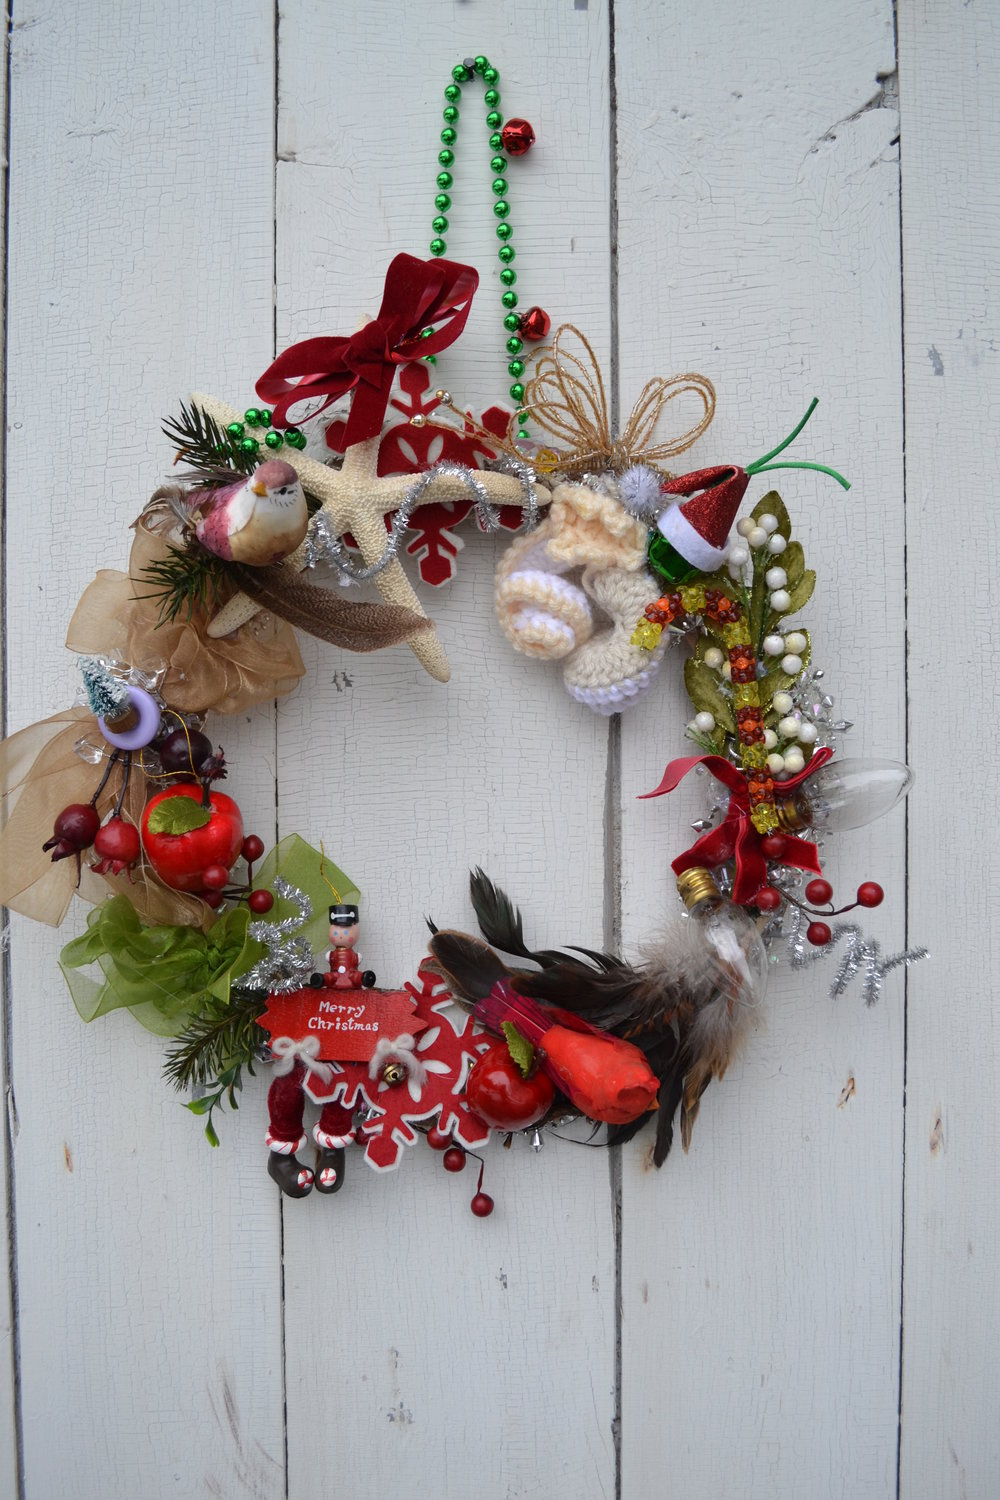 I call this my wreath of Misfit Toys…I found all the broken ornaments, holiday bulbs, left over stuff from wrapping paper and ribbons and glued it all onto a wood floral frame. I'm sure you don't even have to leave the house to make this. Make a cardboard ring if you don't have a wooden one.